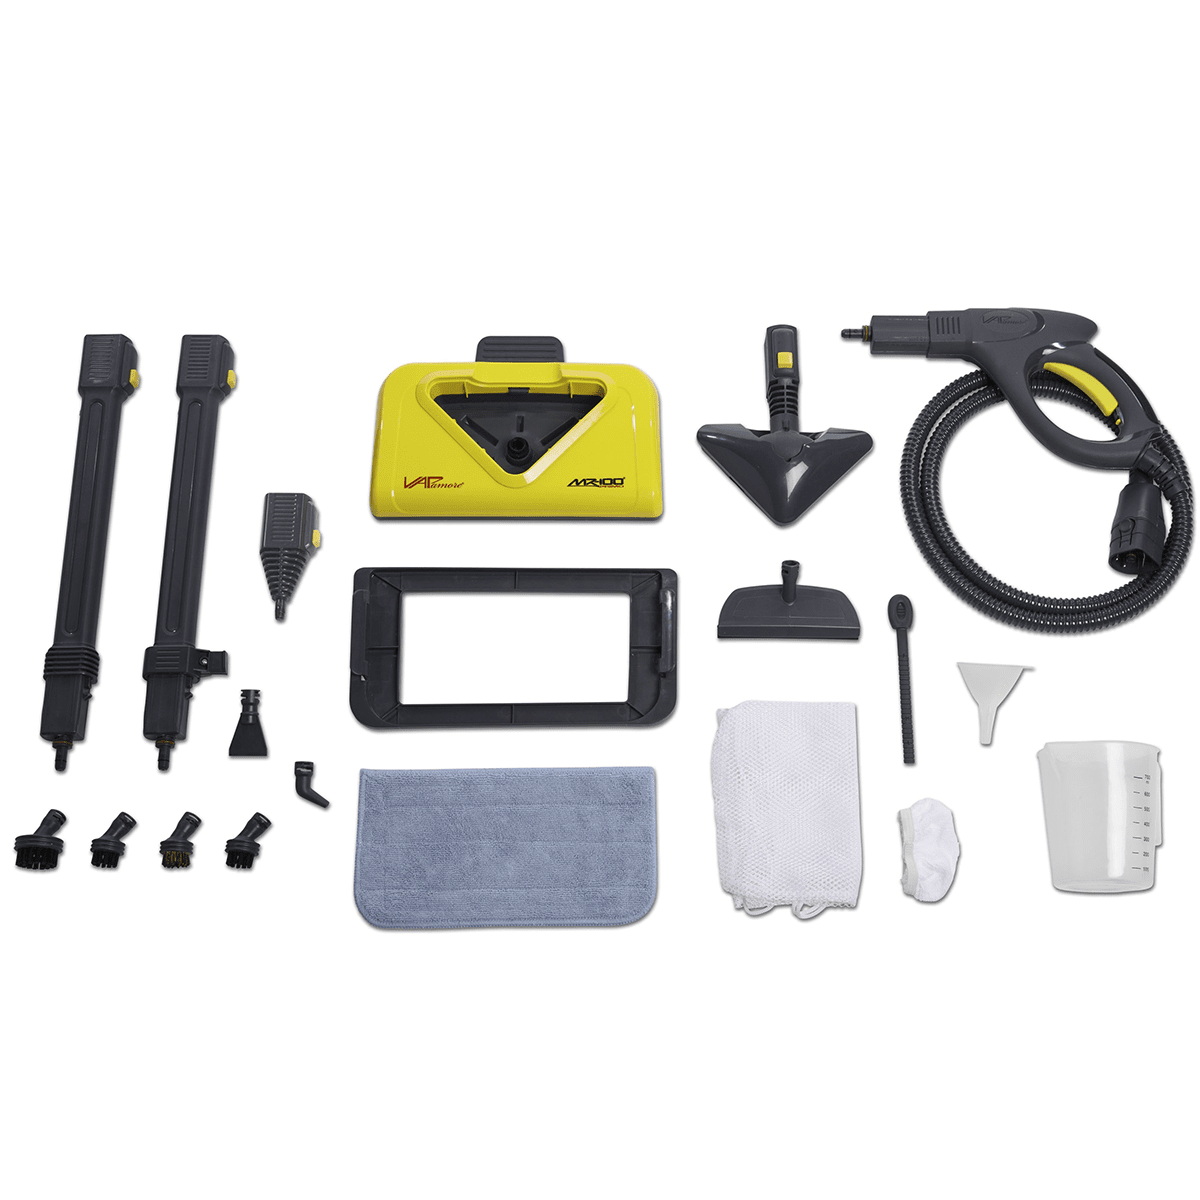 Cleaning attachments and accessories for Vapamore MR-100 Prim